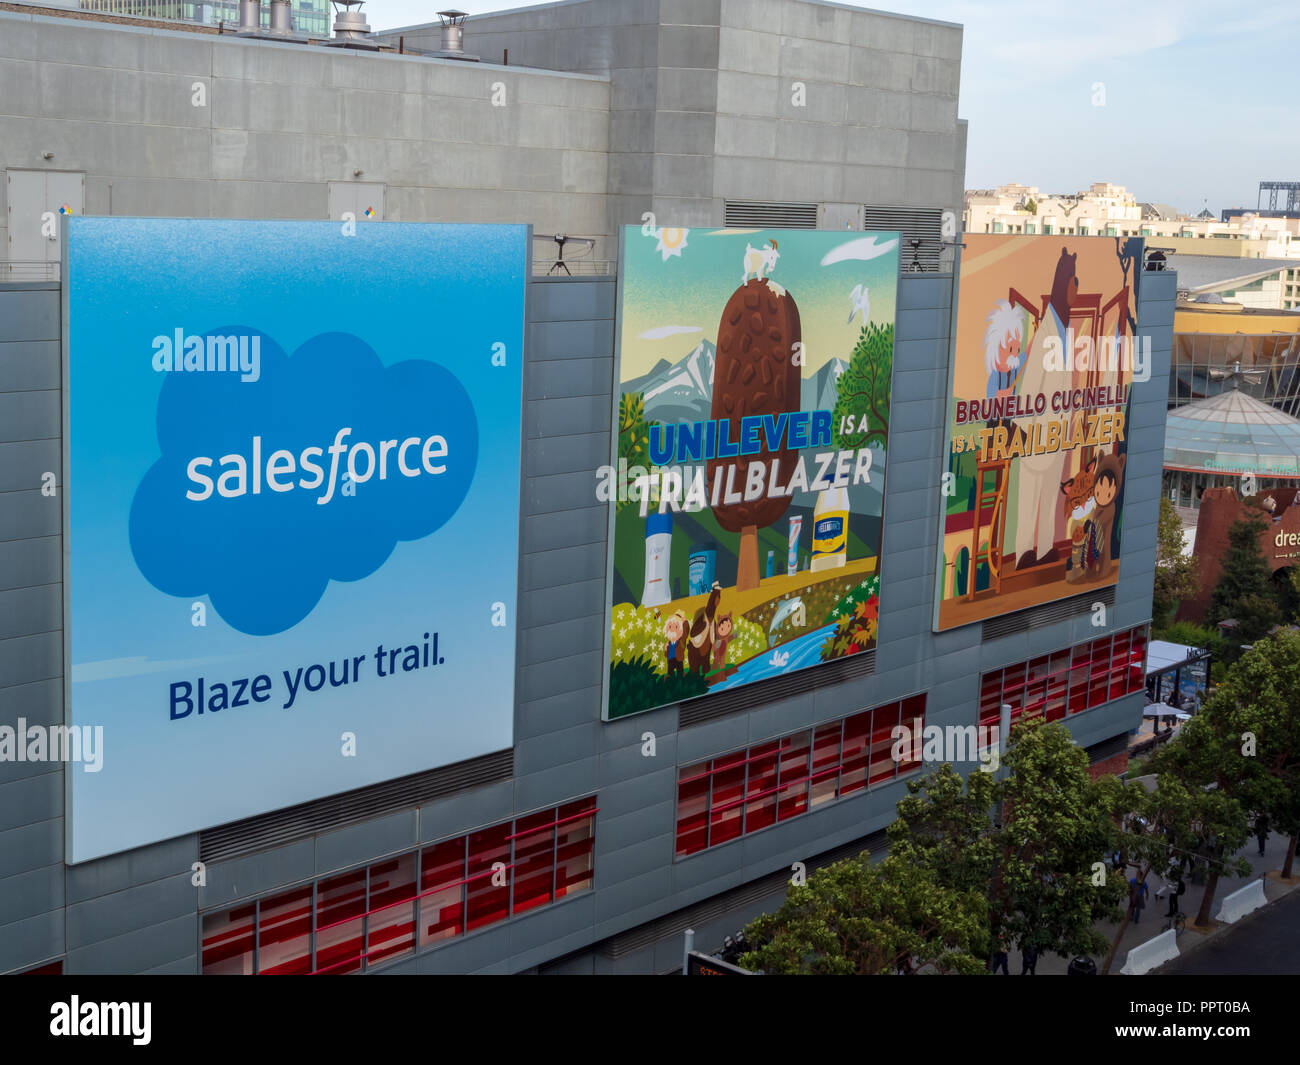 Salesforce with Unilever and Brunello Cucinelli billboards hanging in downtown San Francisco for Dreamforce conference - Stock Image